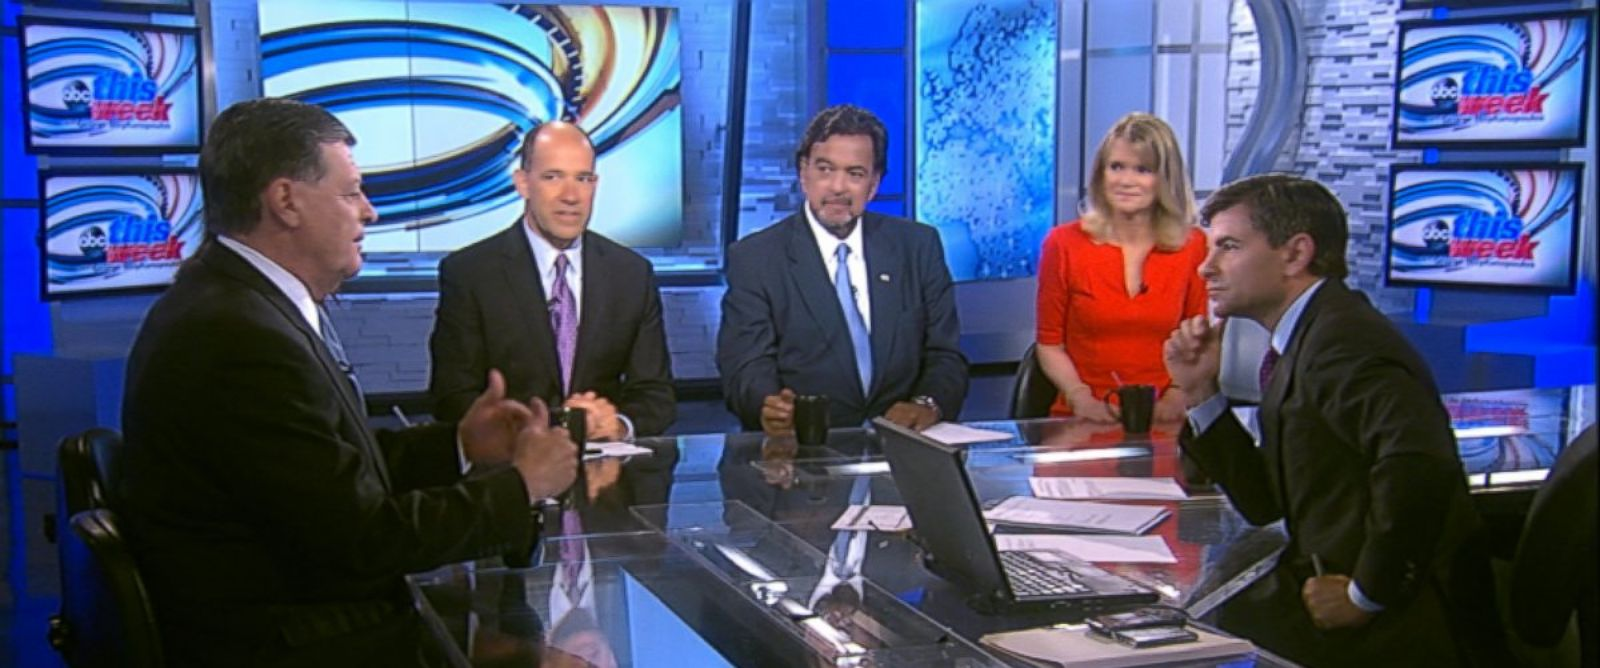 "PHOTO: ABC News Political Analyst Matthew Dowd, Fusions ""AM Tonight"" Host Alicia Menendez, Rep. Tom Cole (R) Oklahoma, Former New Mexico Governor (D) Bill Richardson and ABC News Chief Global Affairs Correspondent Martha Raddatz on This Week."